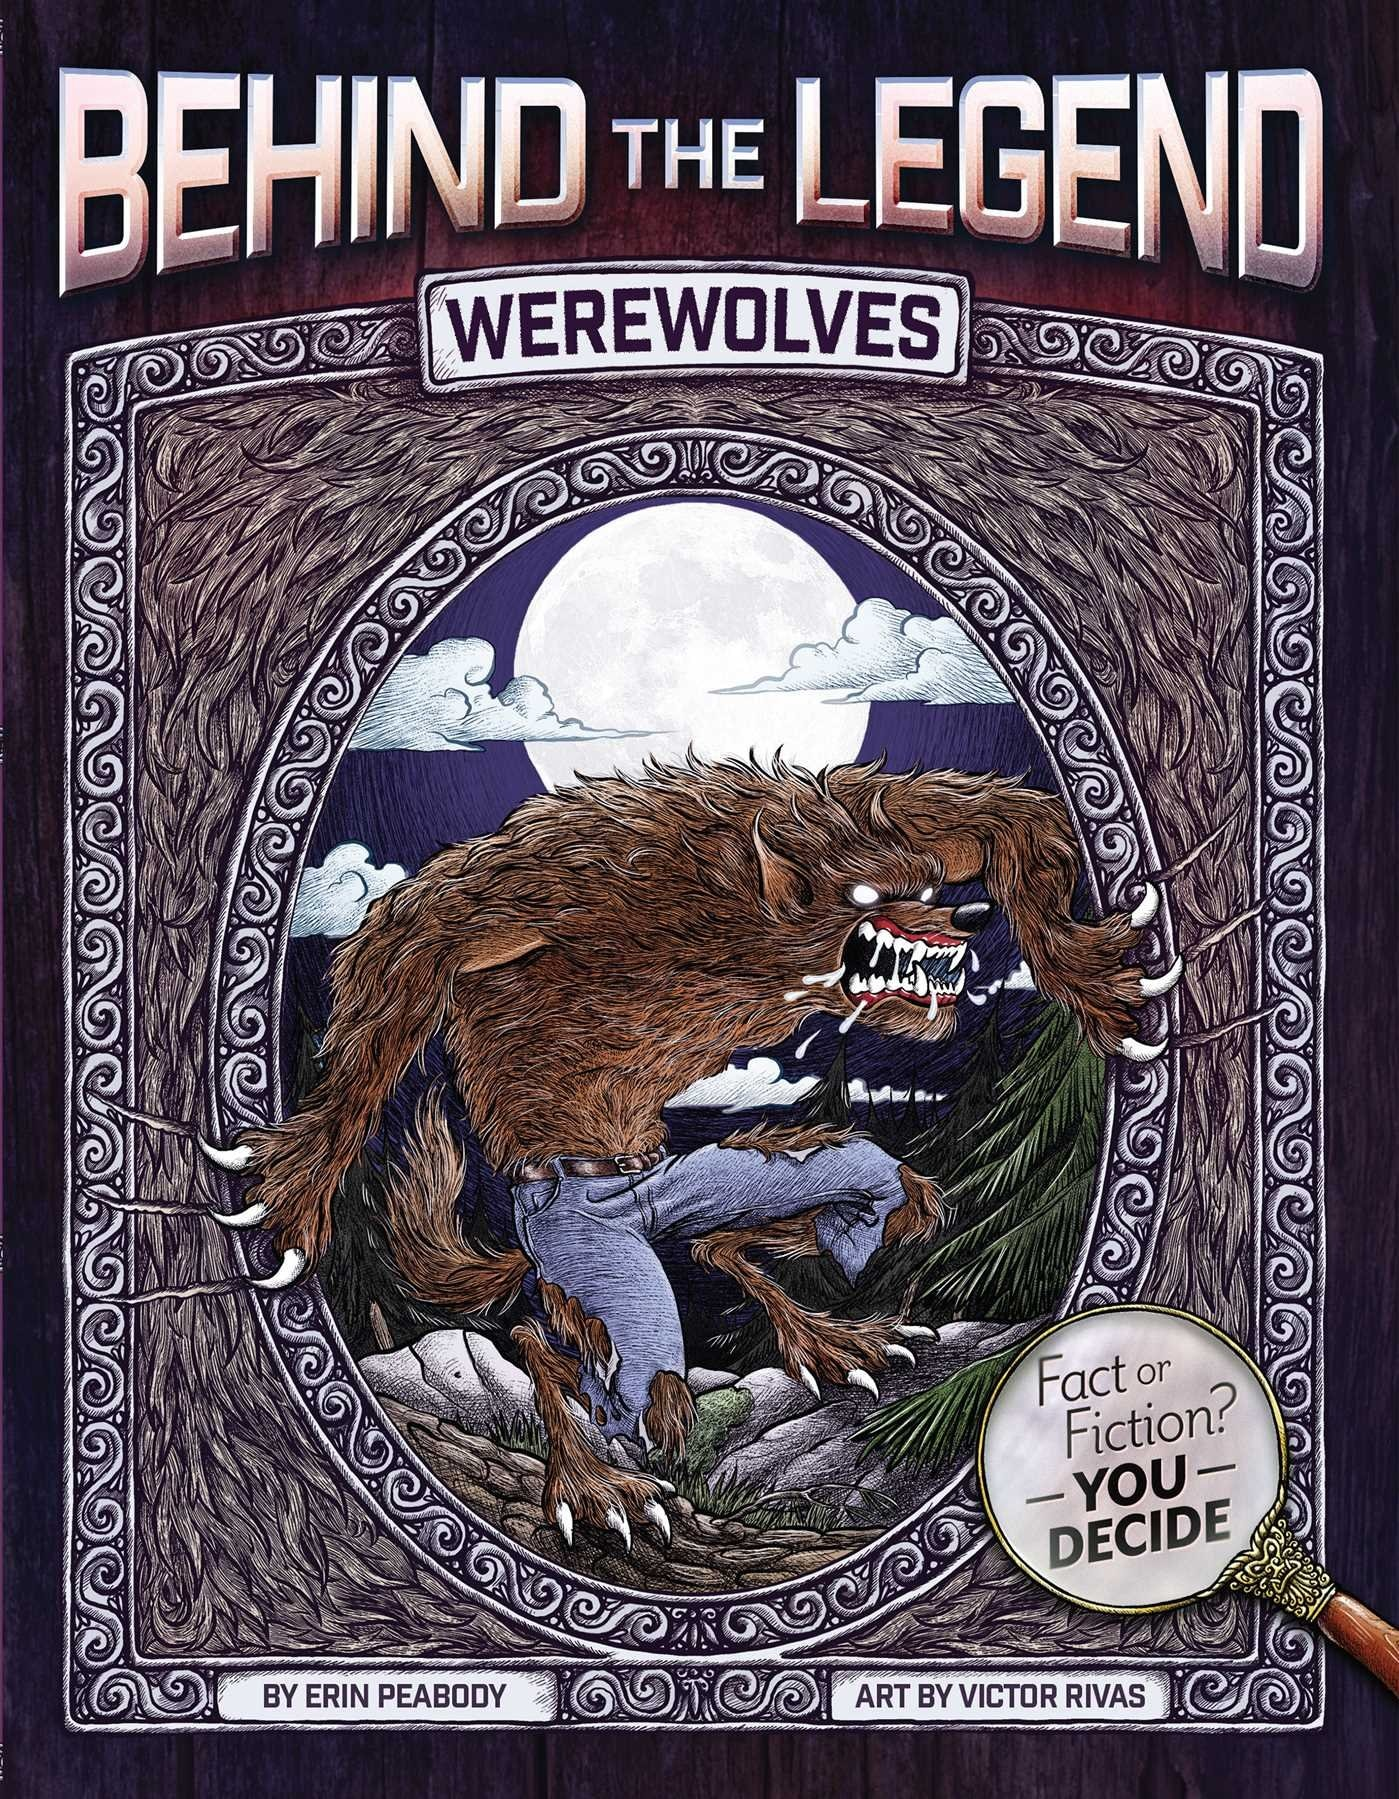 btl werewolves - Behind the Legend Book Series Perfect Intro to Horror for Kids